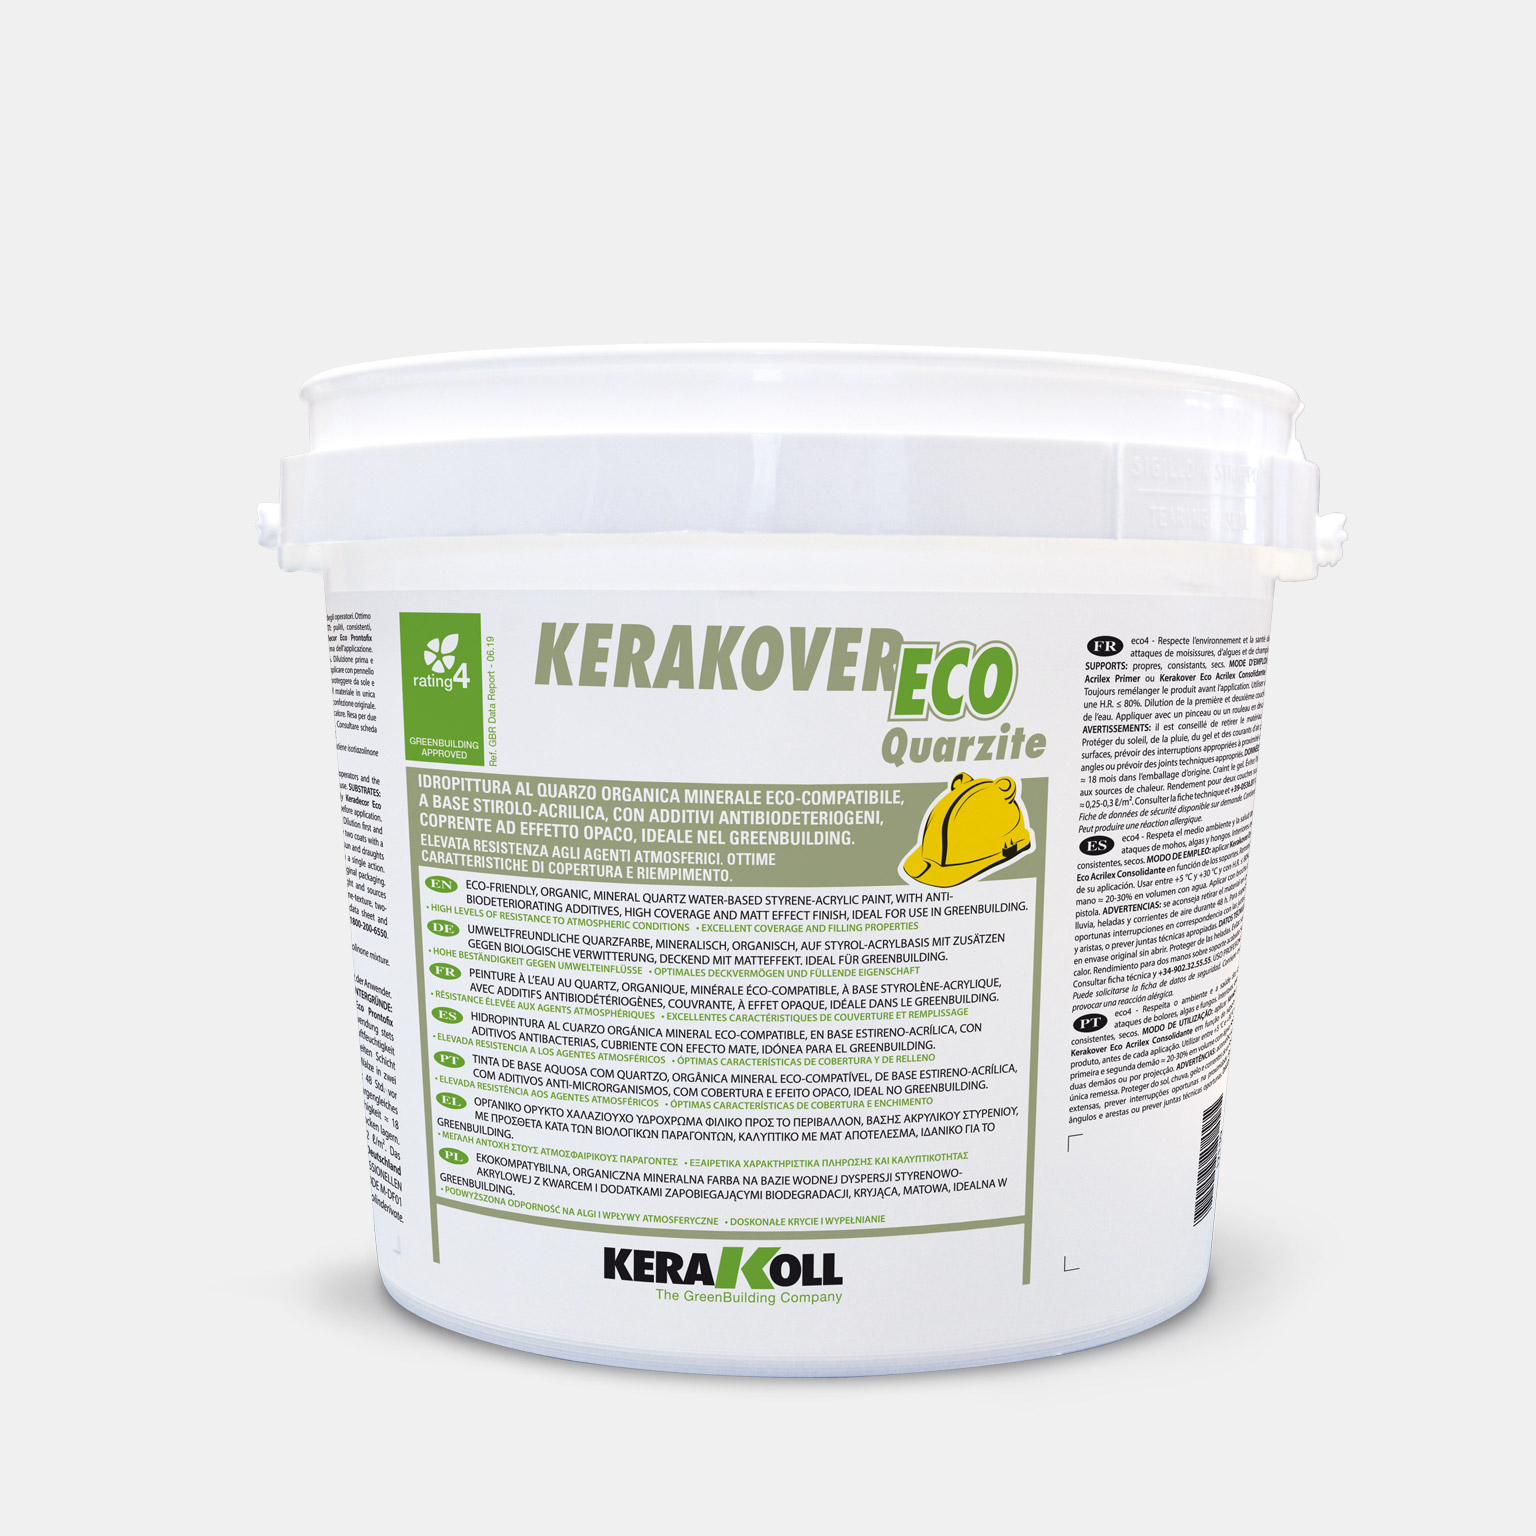 Kerakover Eco Quarzite - immagine pack